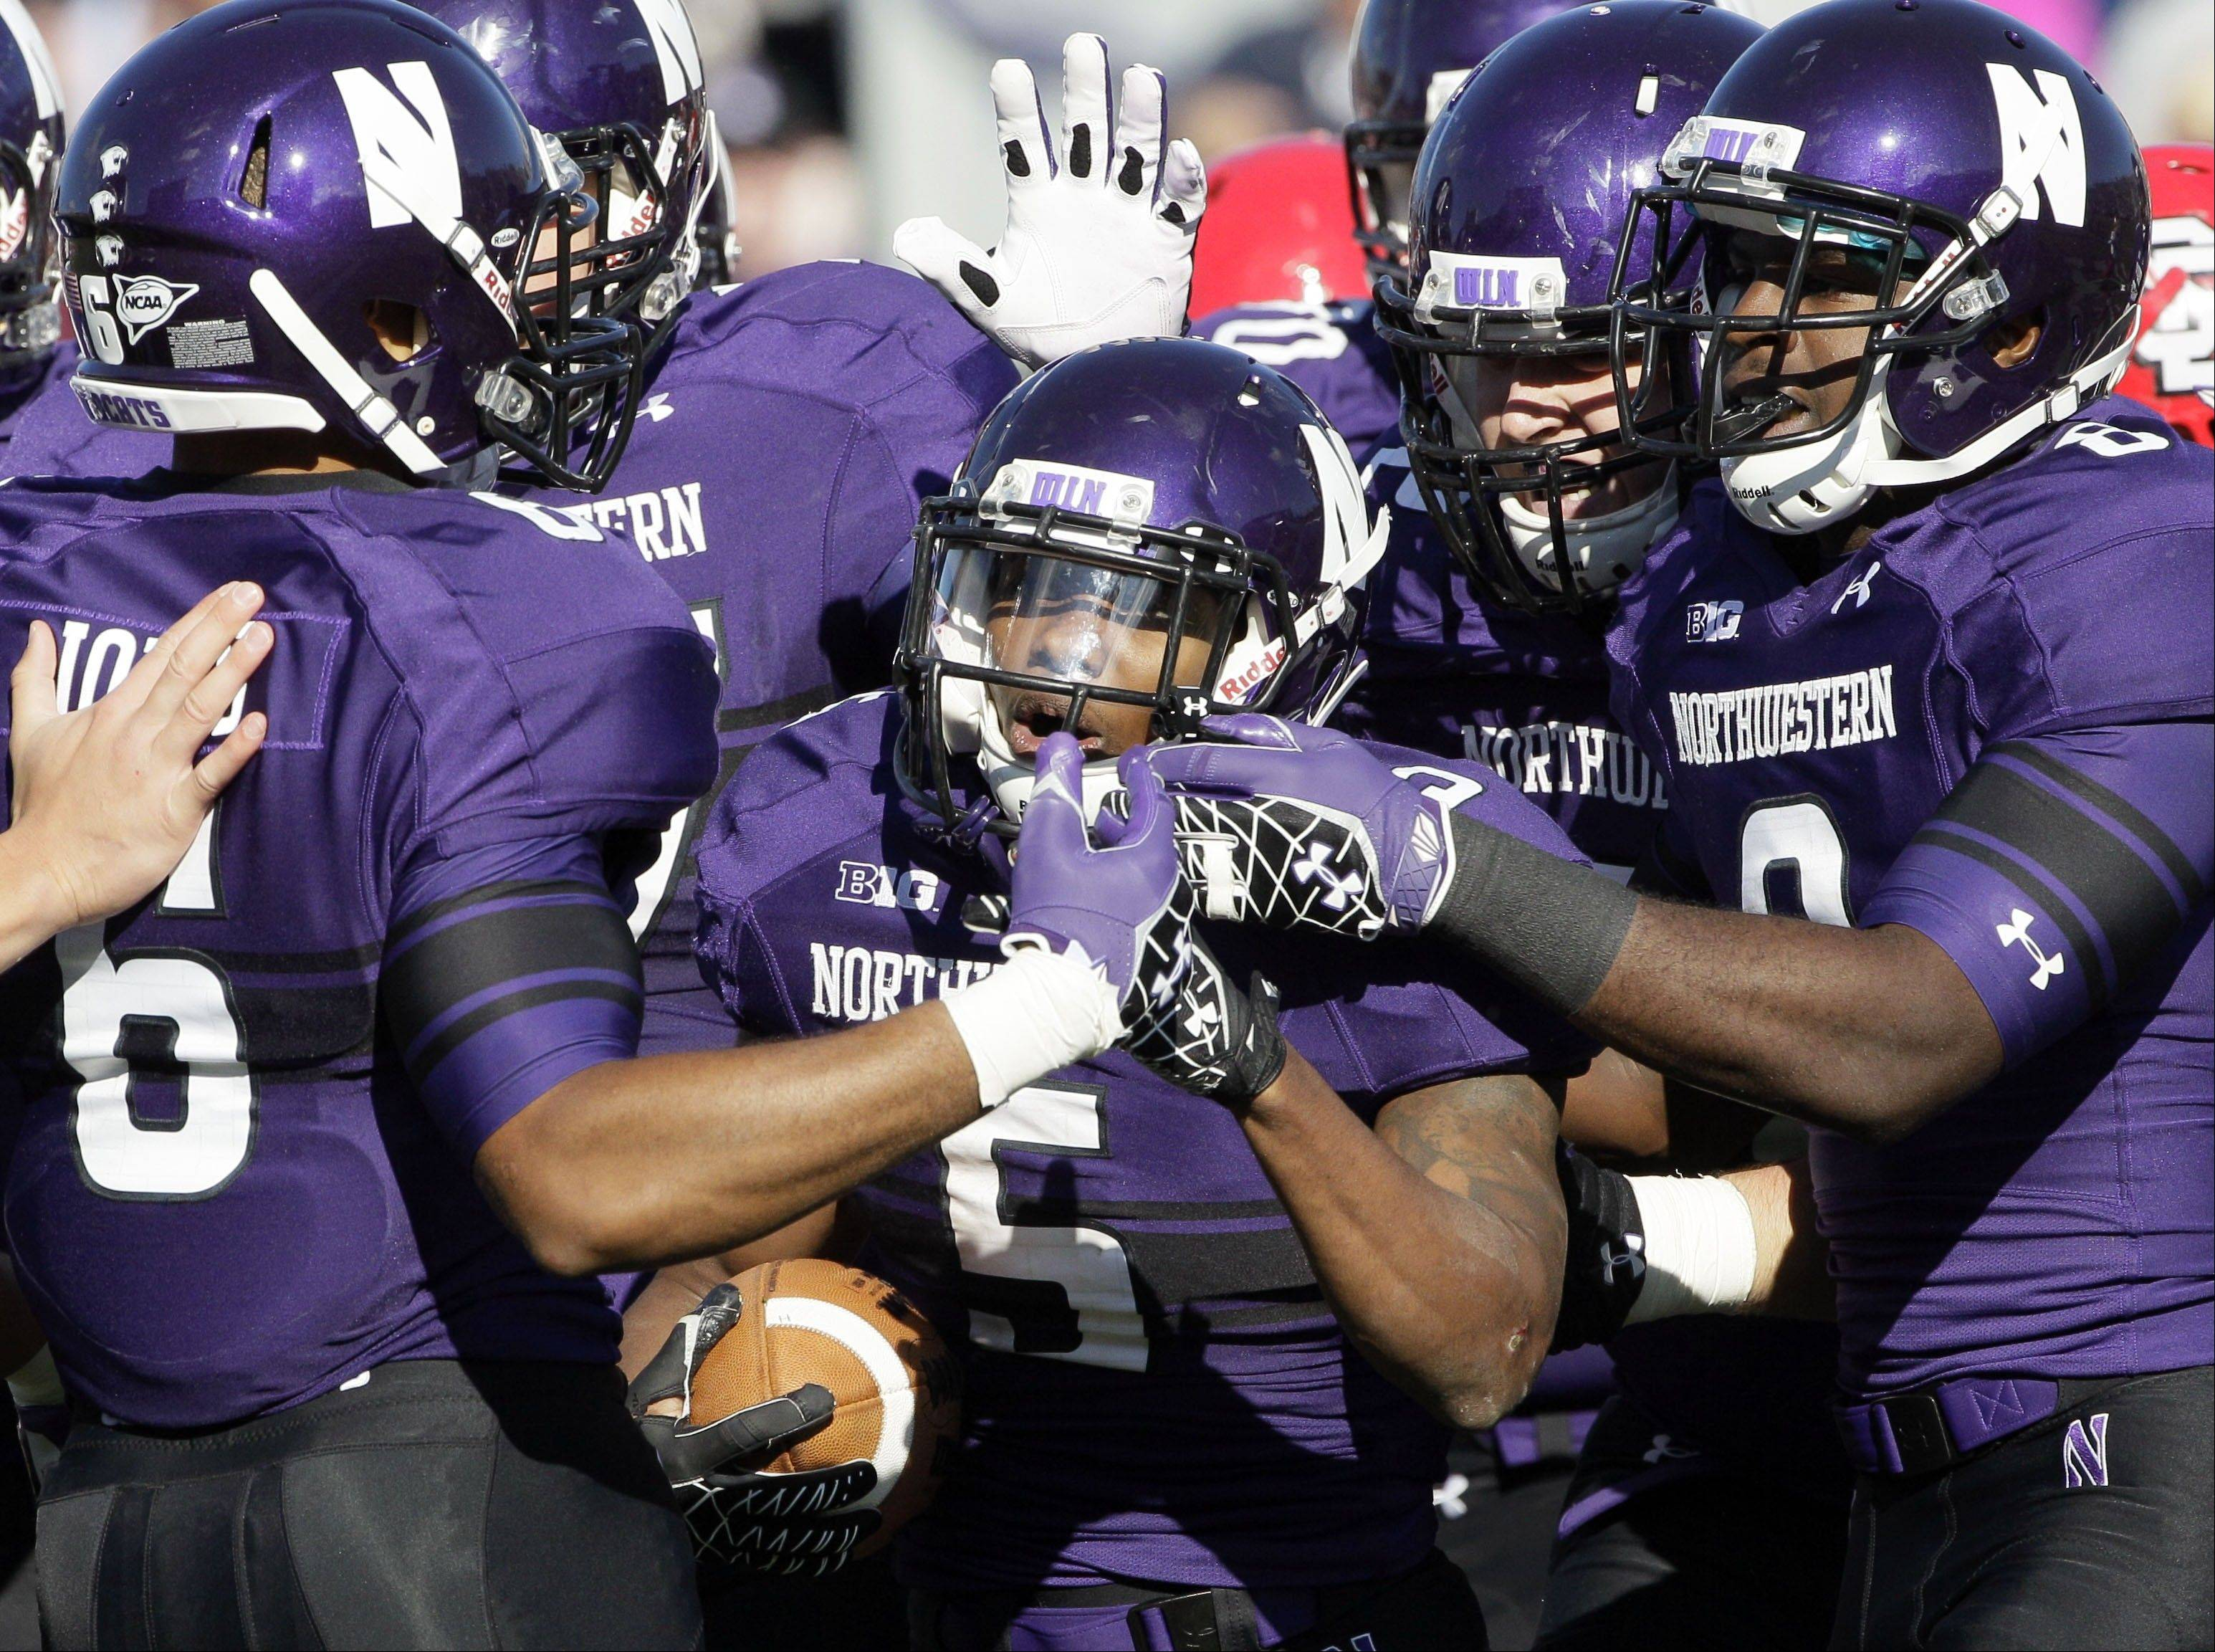 Northwestern cruises, eyes future in Big 10